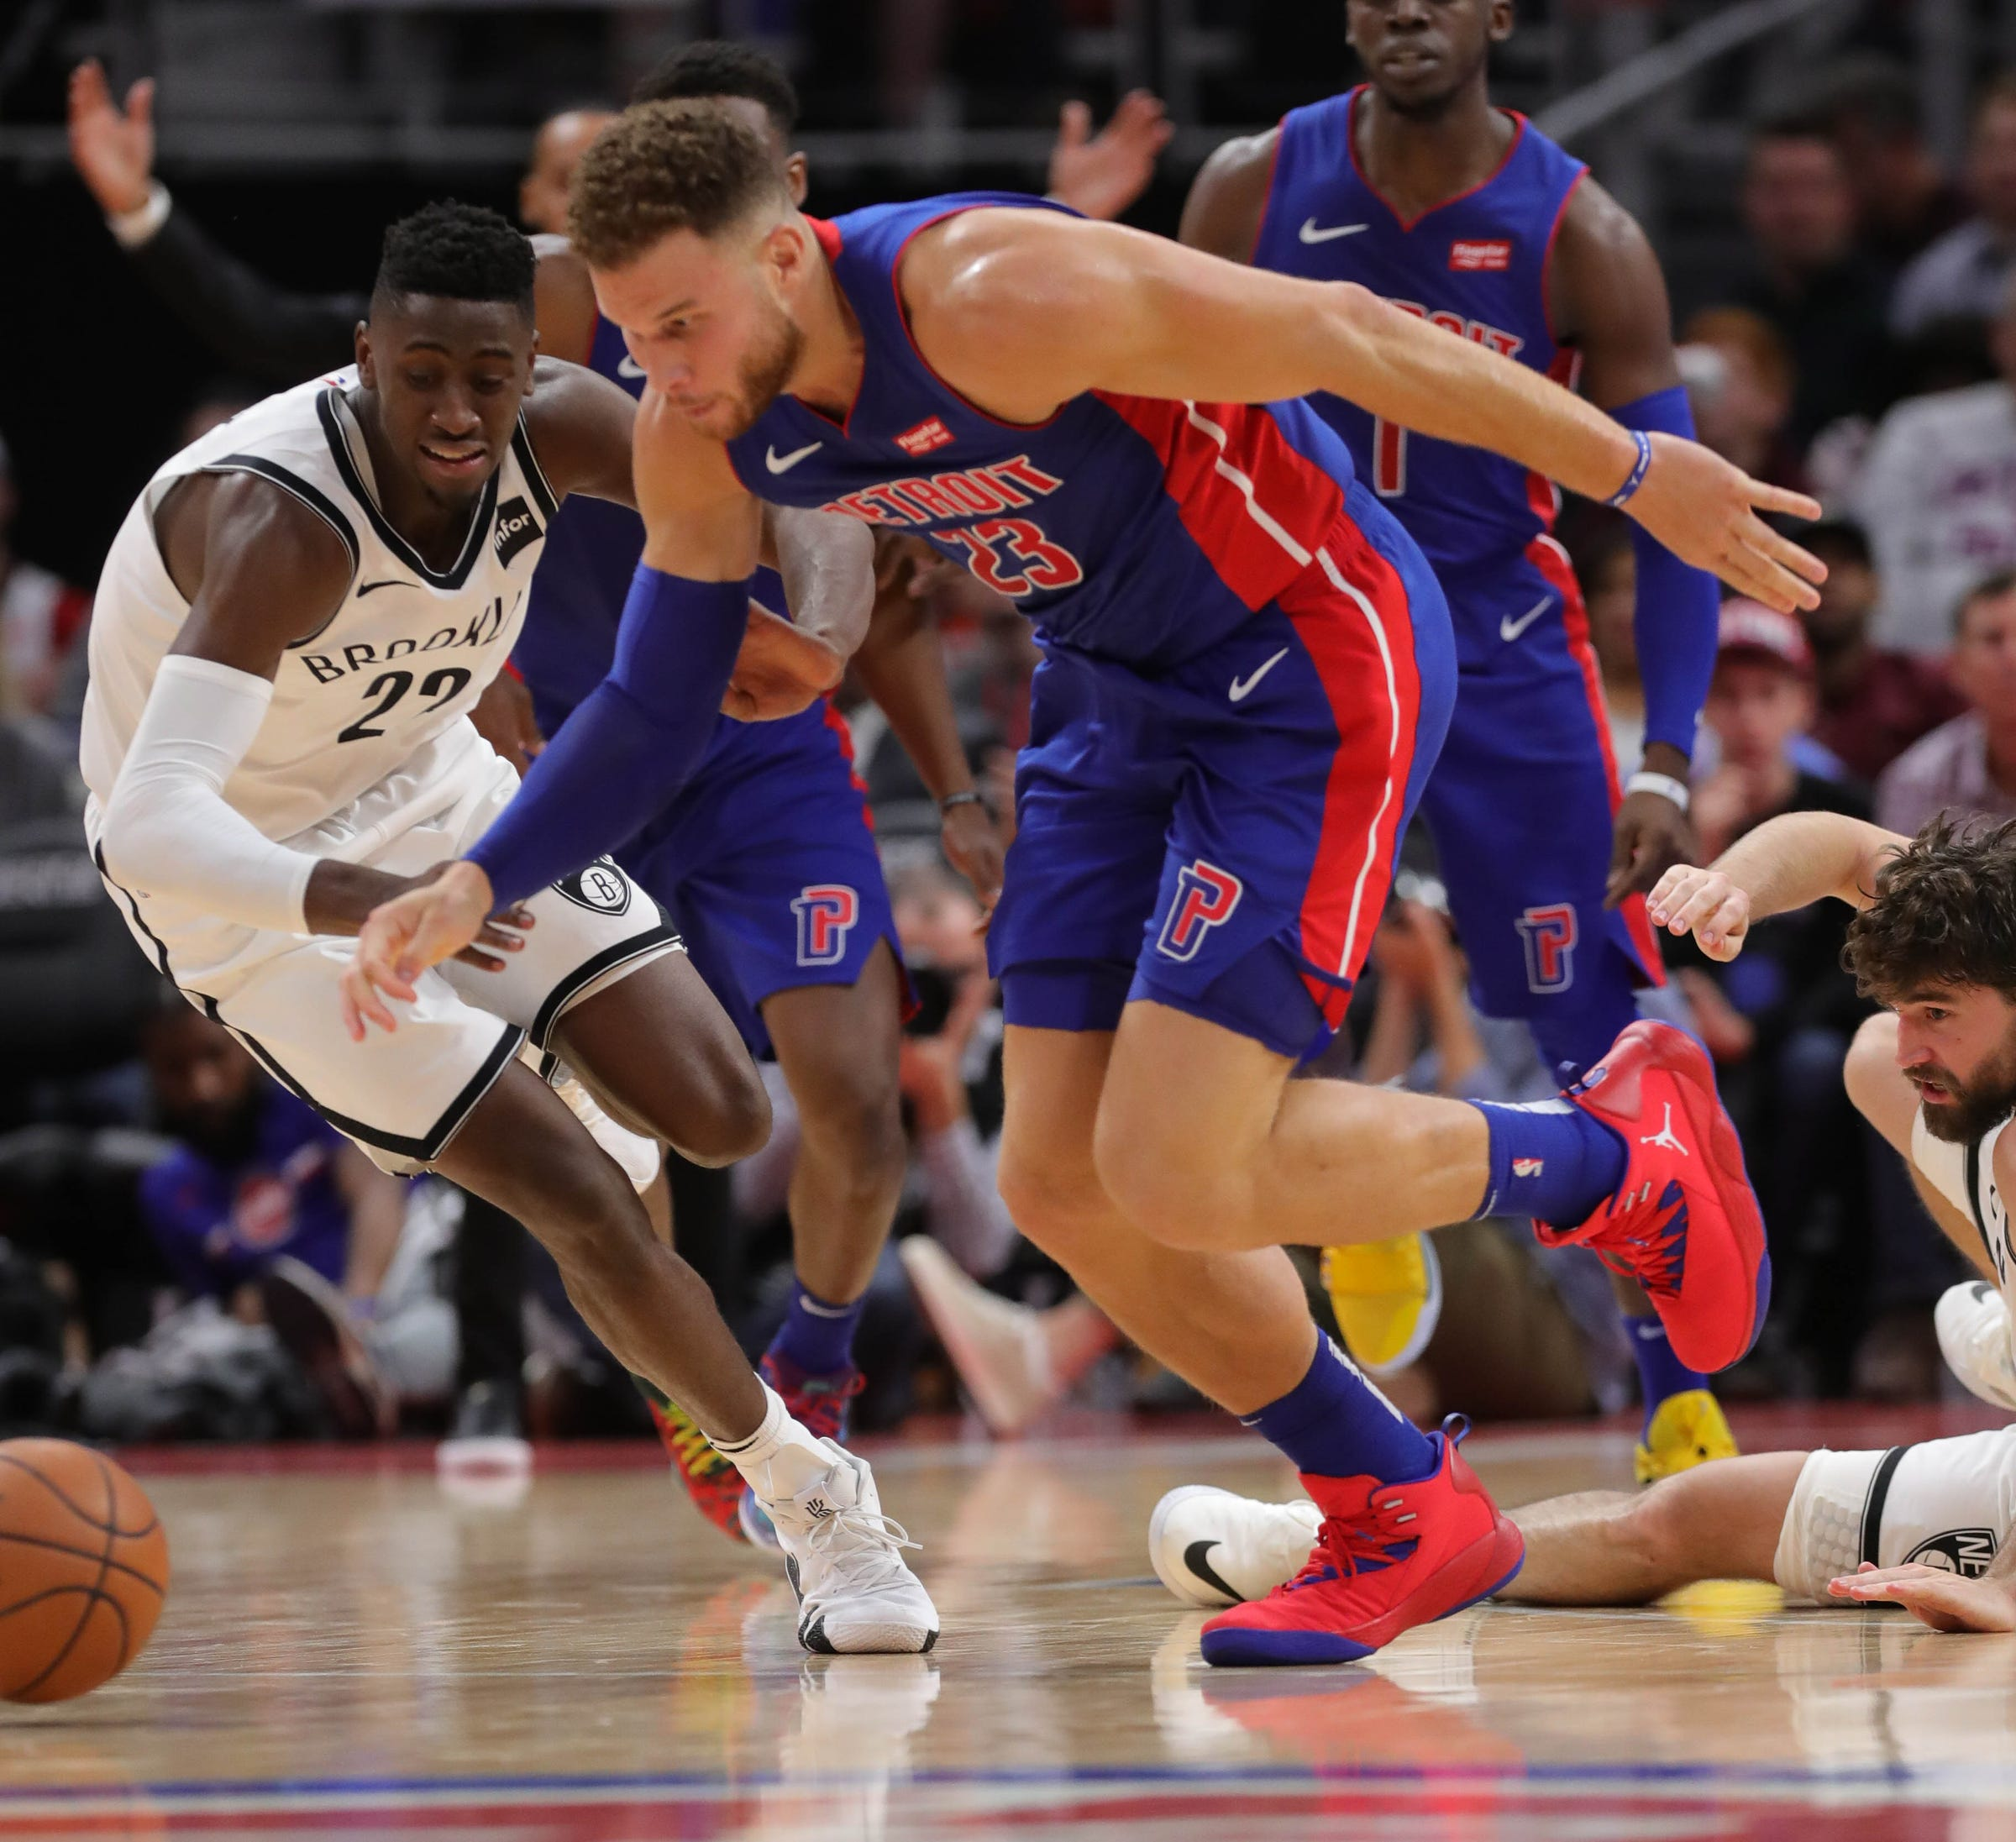 Pistons forward Blake Griffin goes for the ball against Nets guard Caris Levert during fourth period action Wednesday, October 17, 2018 at Little Caesars Arena in Detroit, Mich.